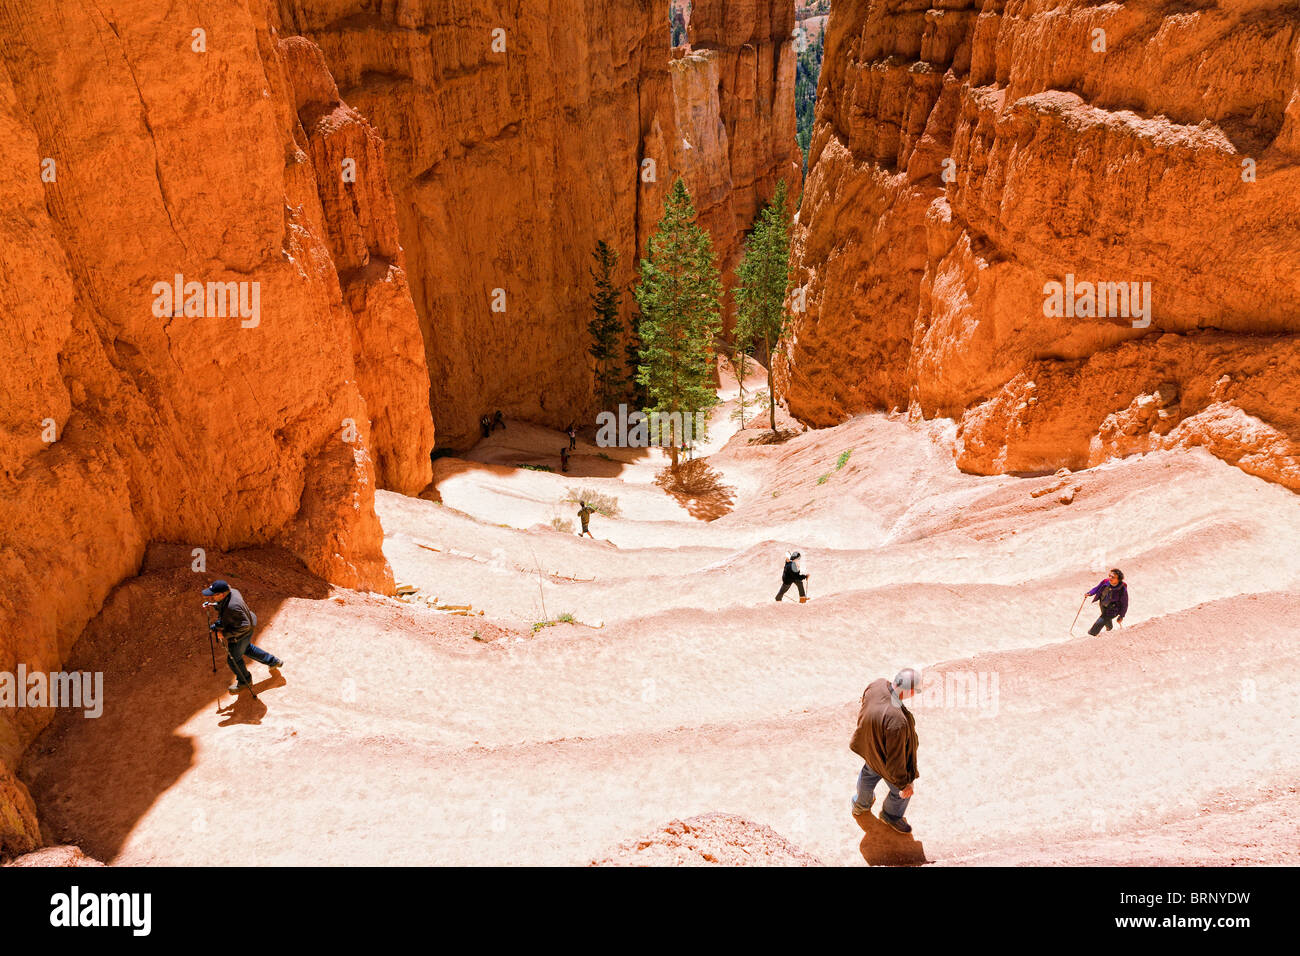 Switchback hiking trail in Bryce Canyon - Stock Image